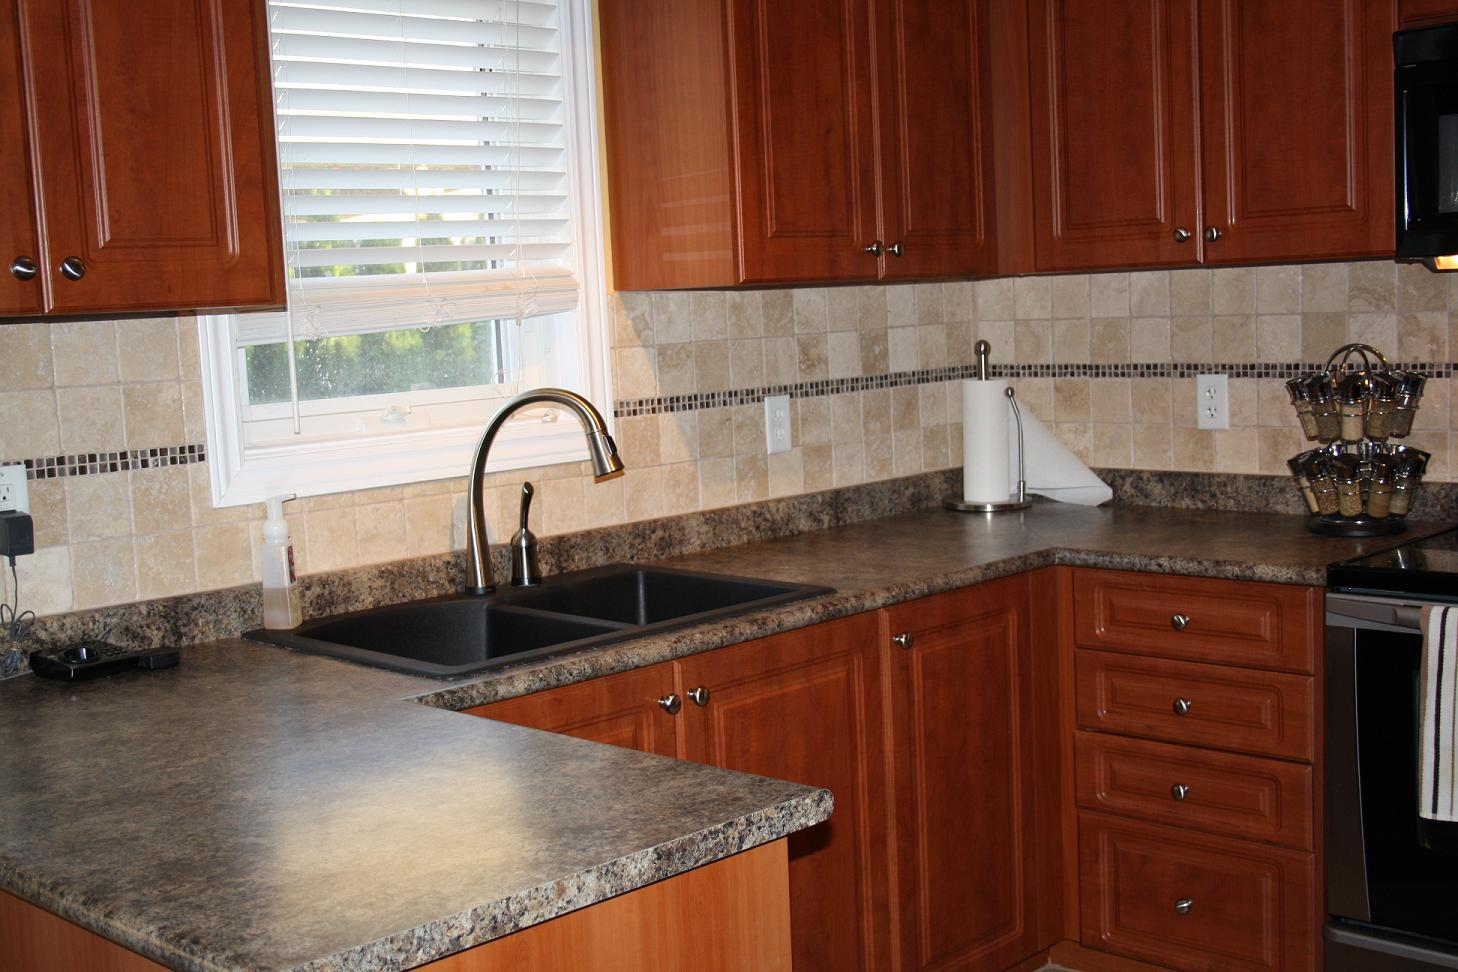 Kitchen Renos What To Do With Extra Cash Punch Debt In The Face